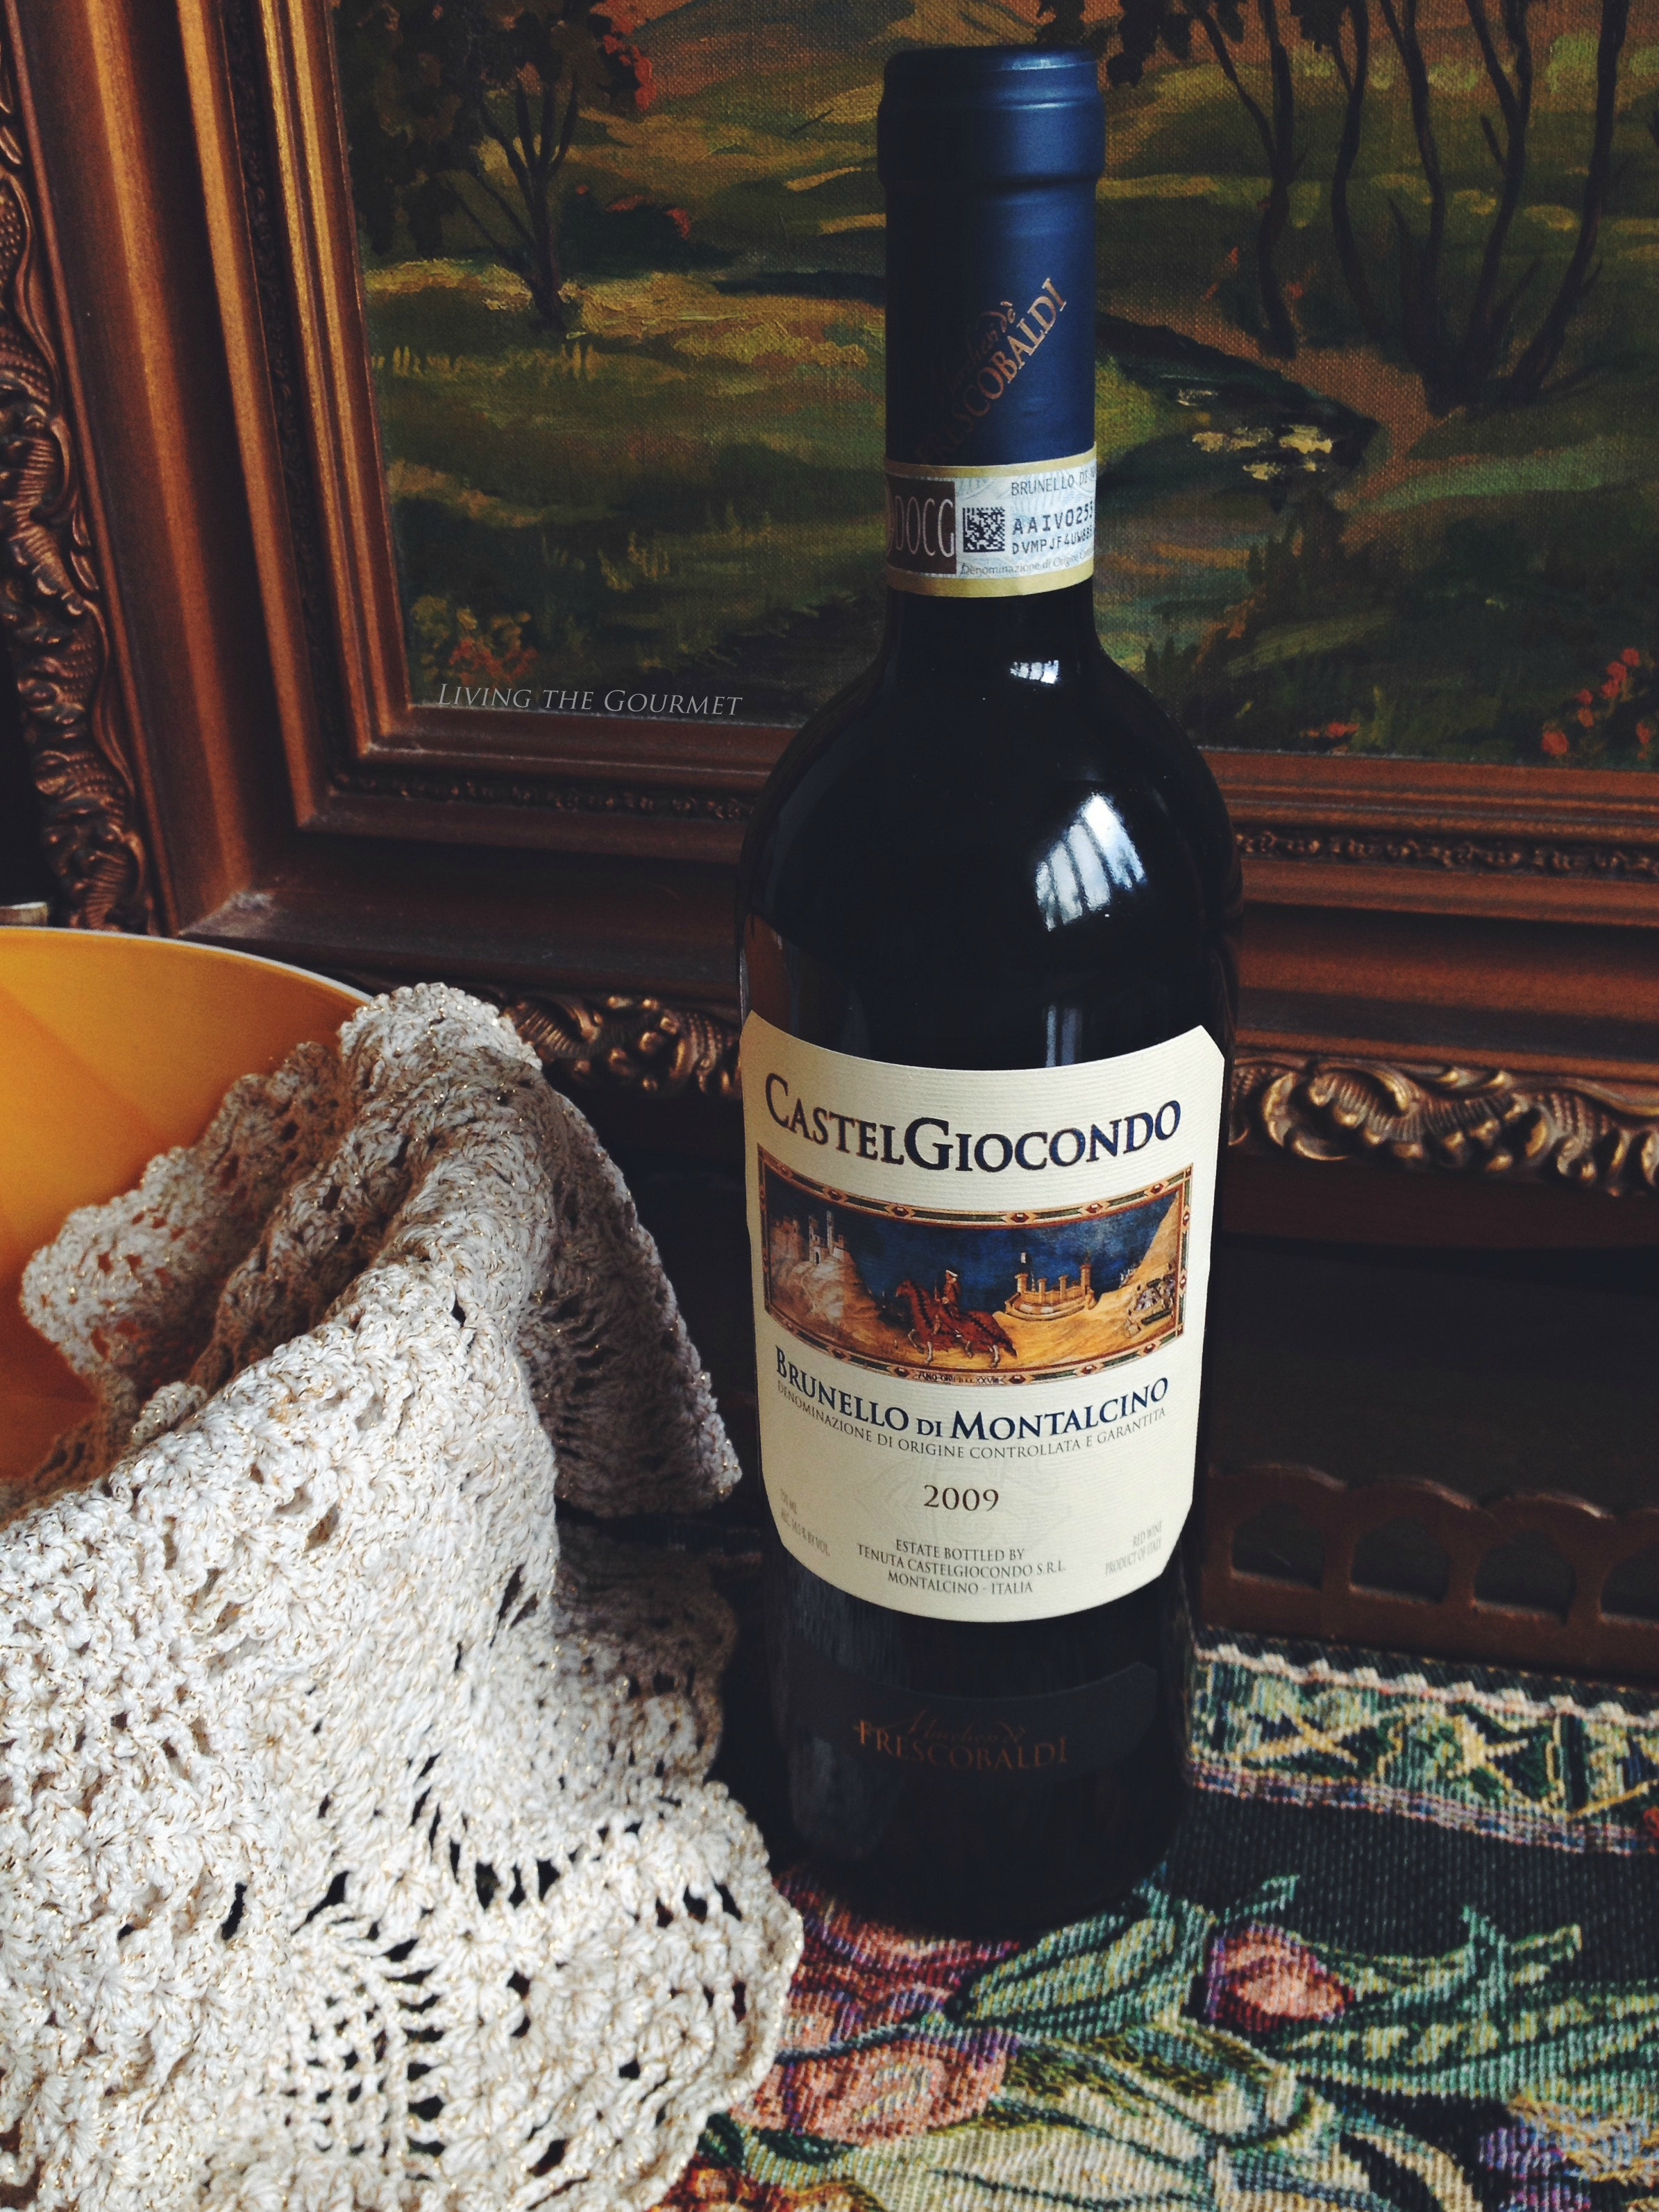 LTG Wine Review: CastelGiocondo